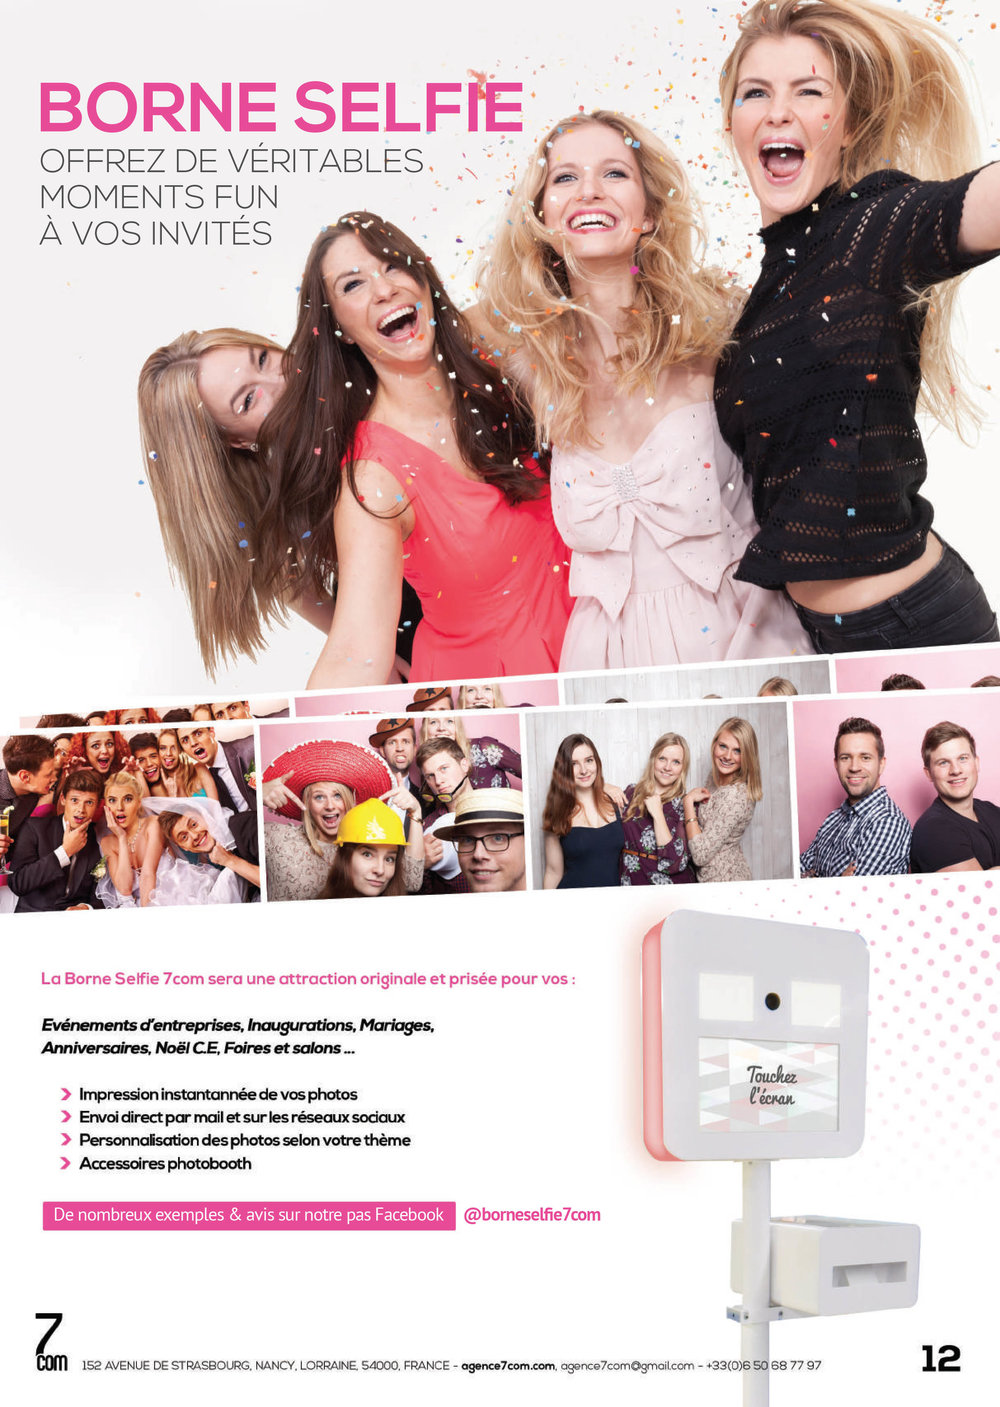 Hd_brochure_7com.compressed-12.jpg